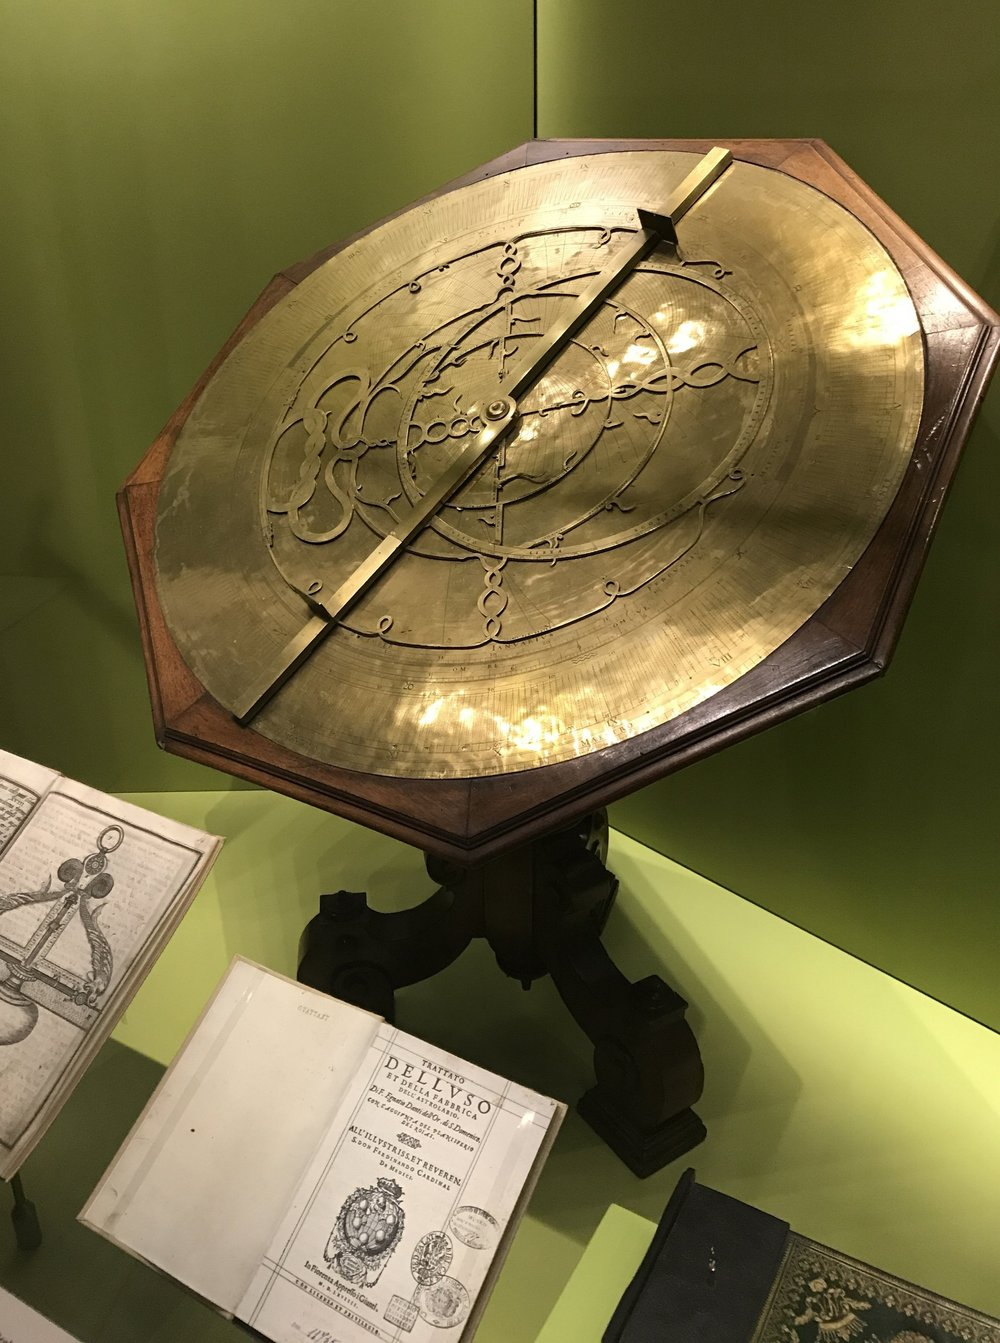 An astrolabe from the 16th century, used to measure the inclined position in the sky of a celestial body.